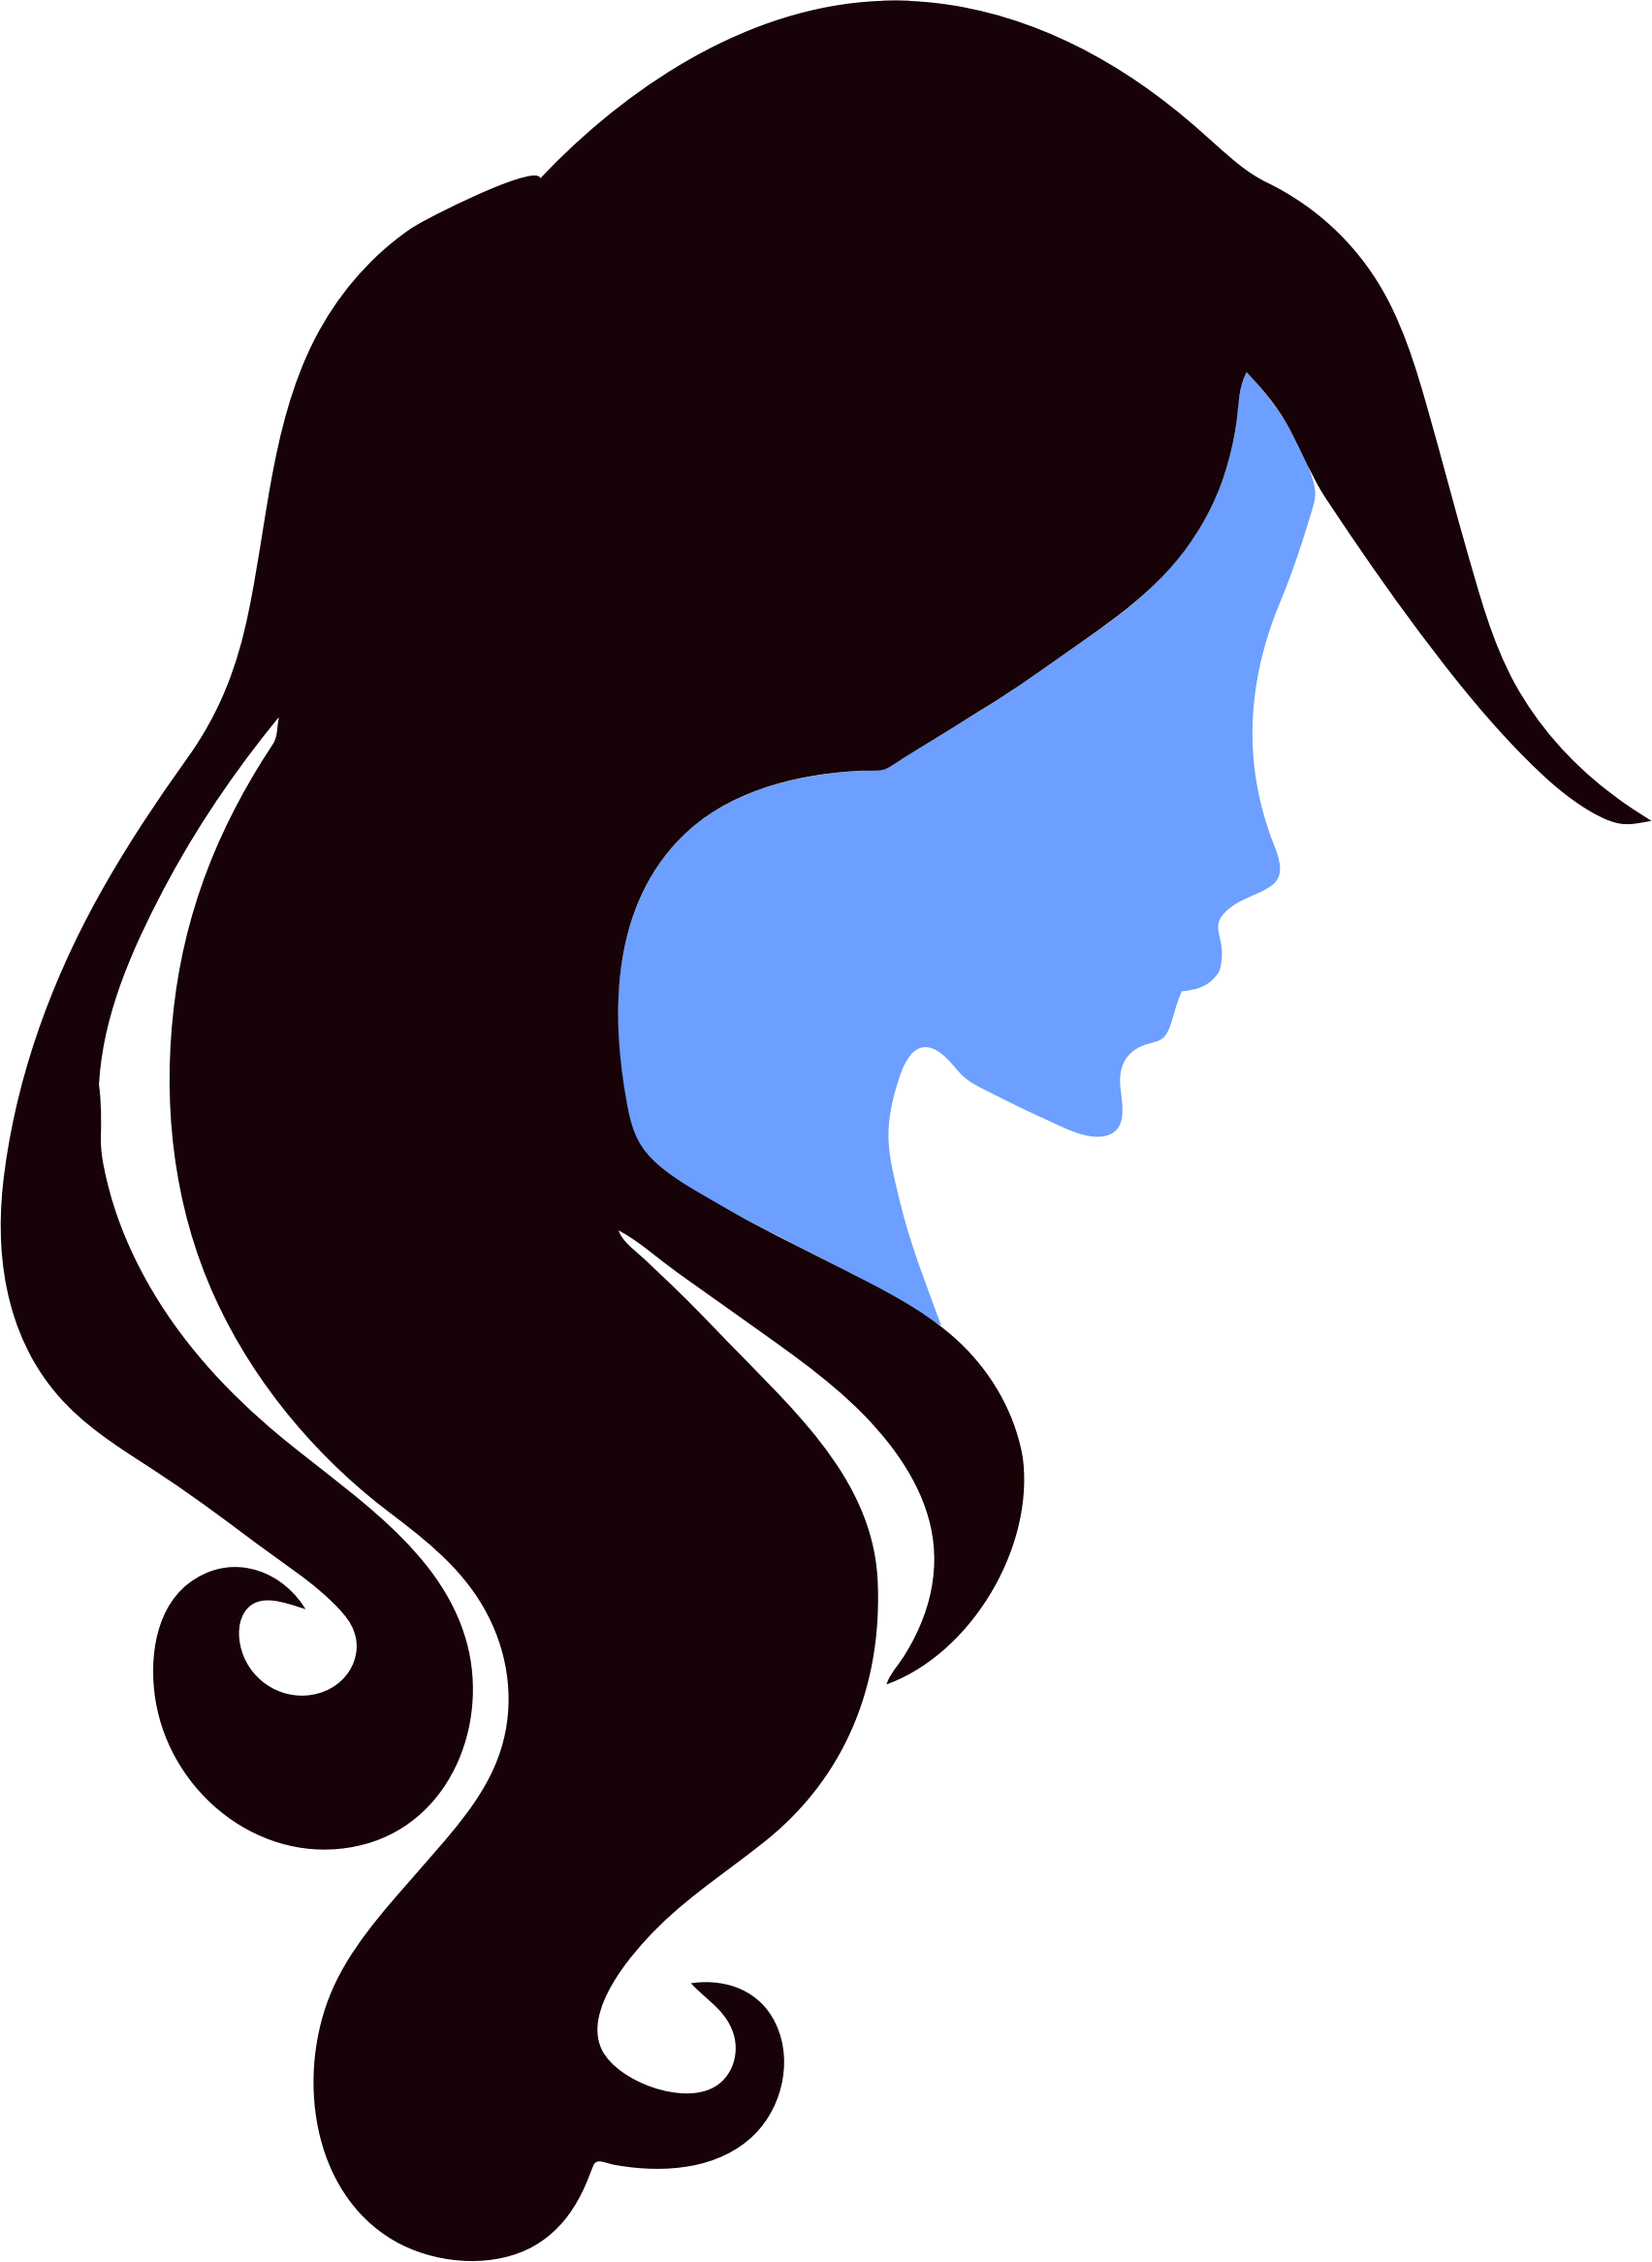 Woman clipart profile Profile Woman Clipart Woman Profile